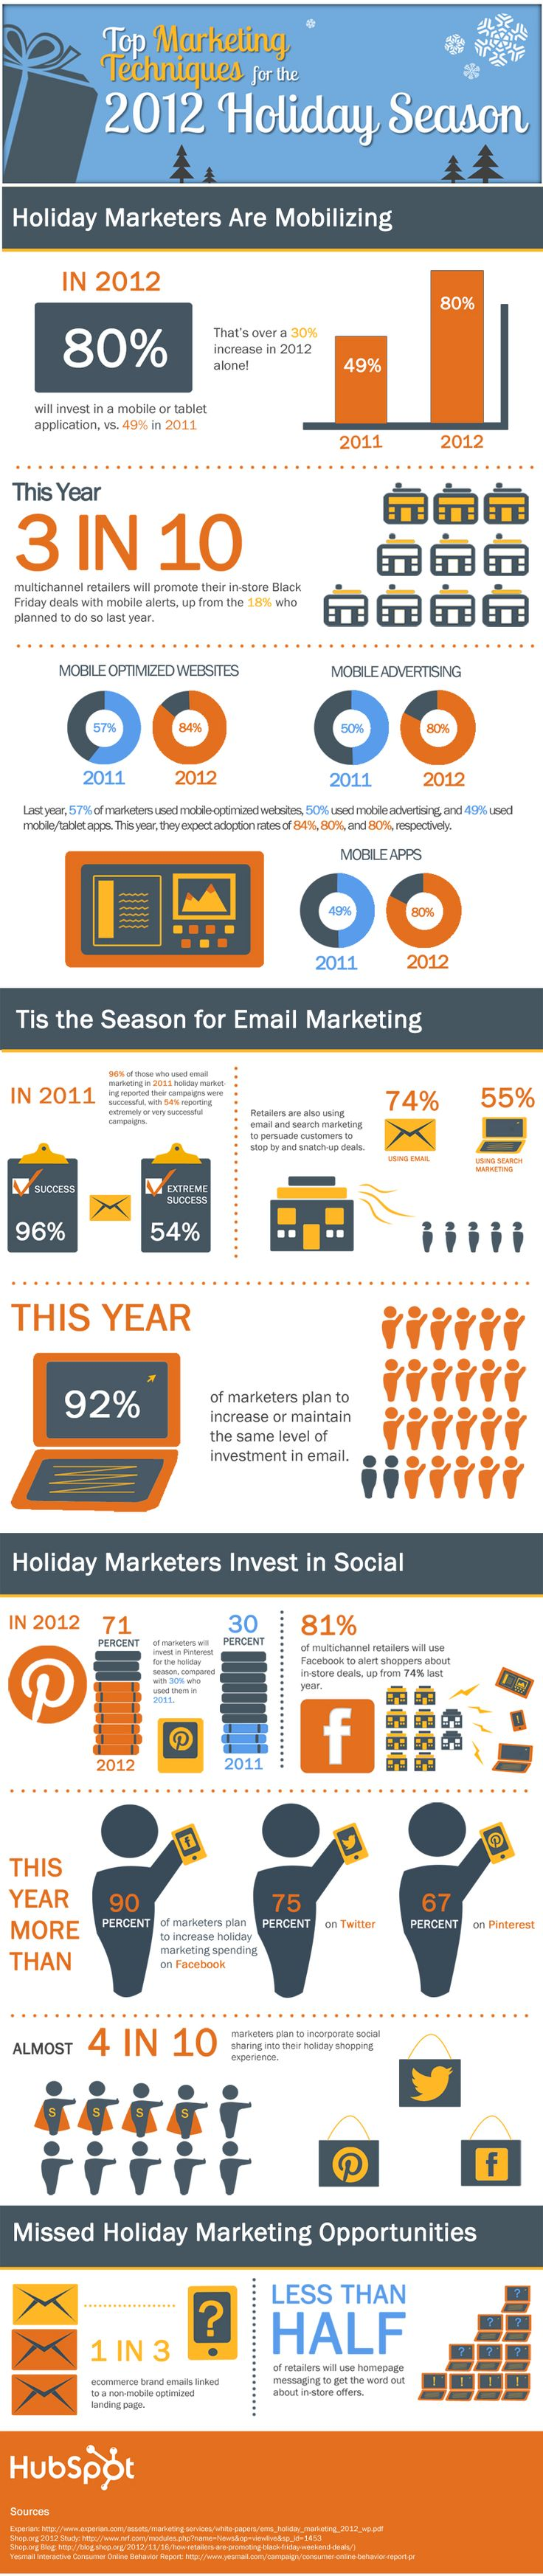 2012 holiday marketing stats